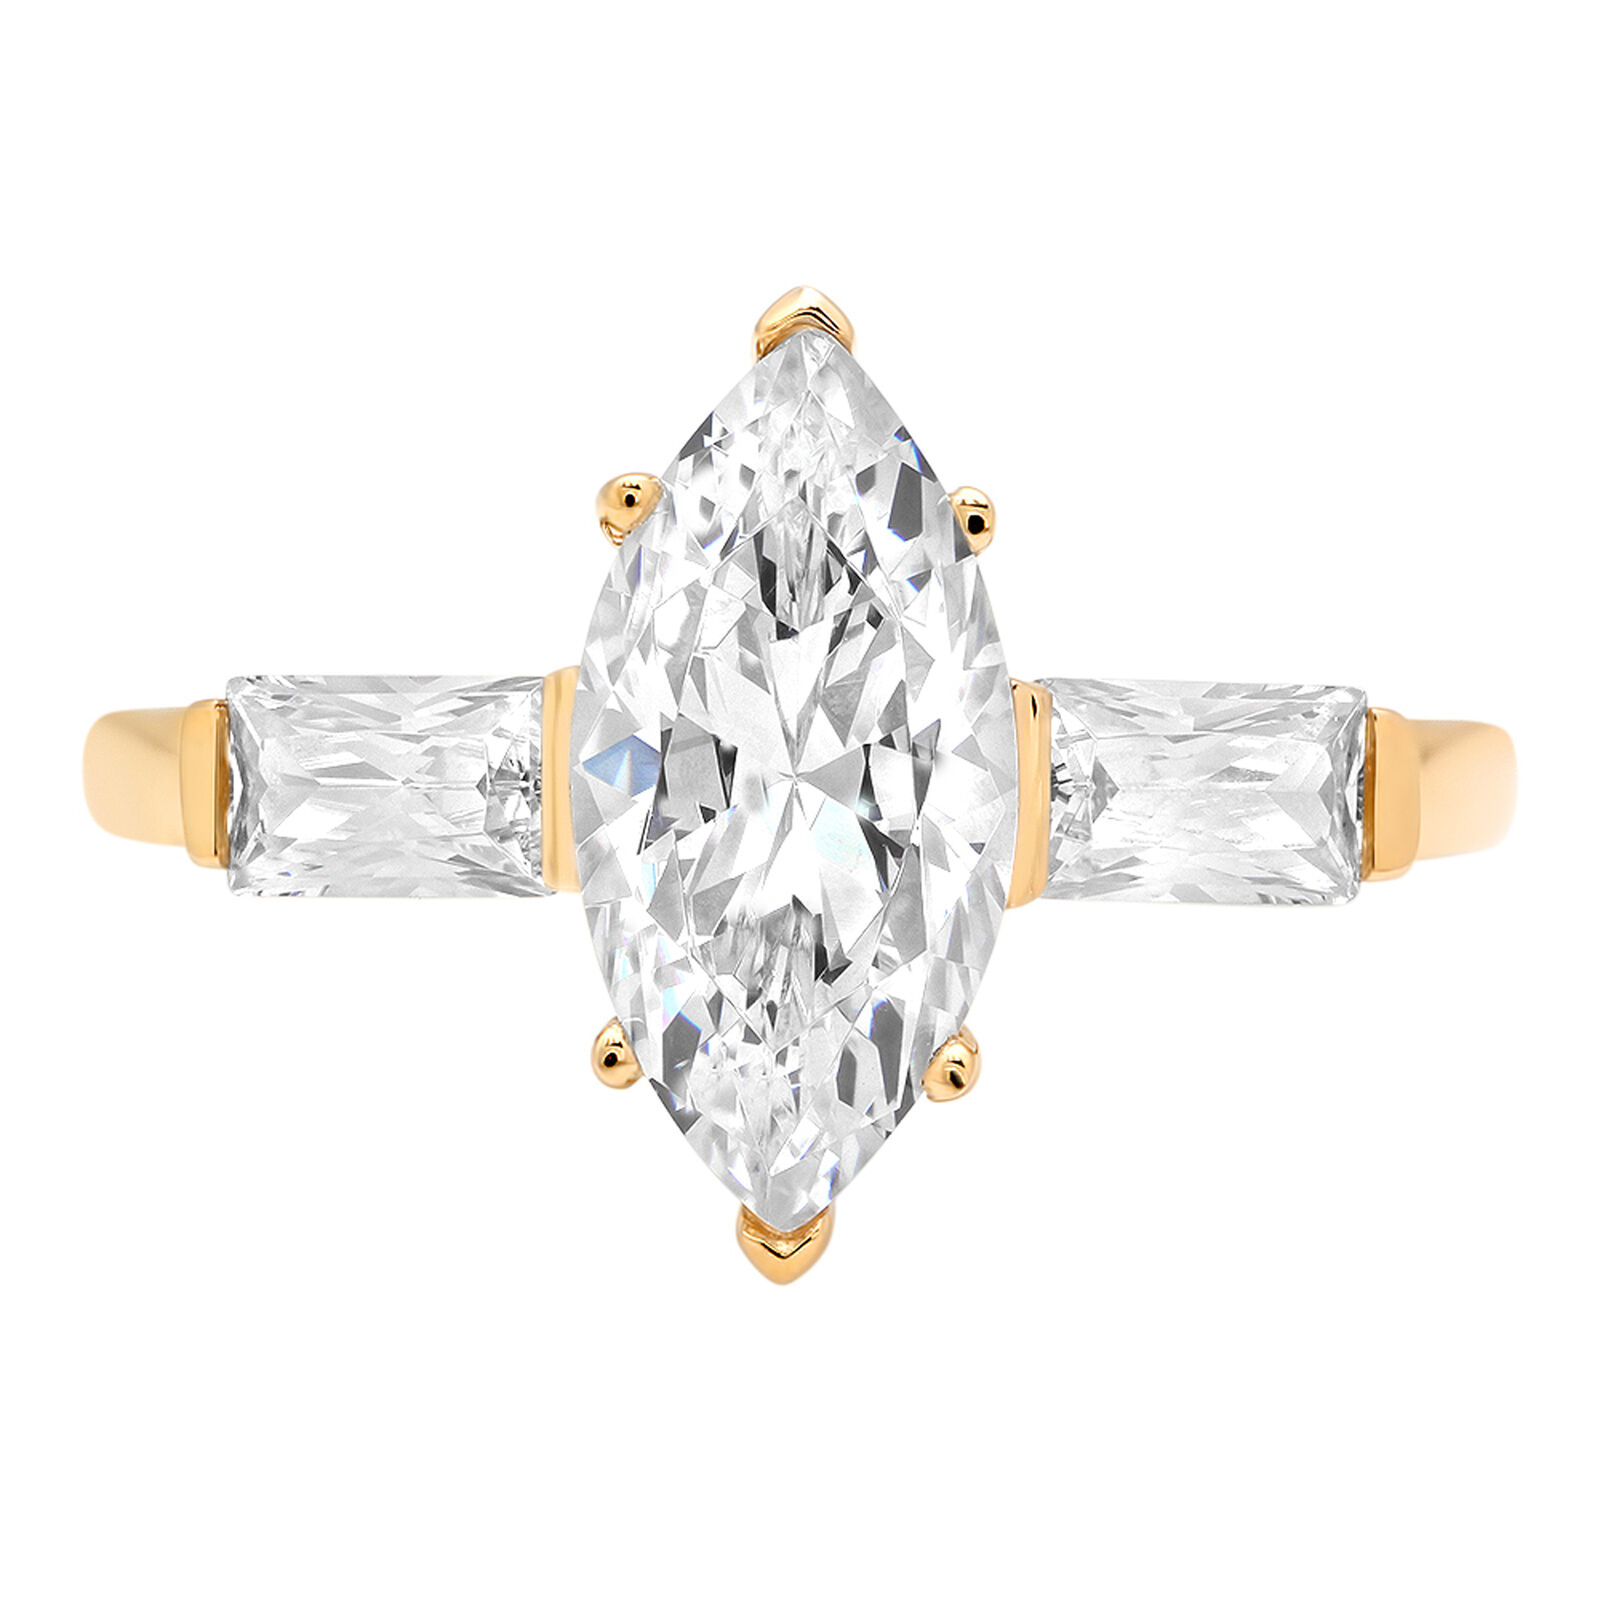 2.1 3 Stone Marquise Baguette Cut Classic Engagement Bridal Ring 14k Yellow gold